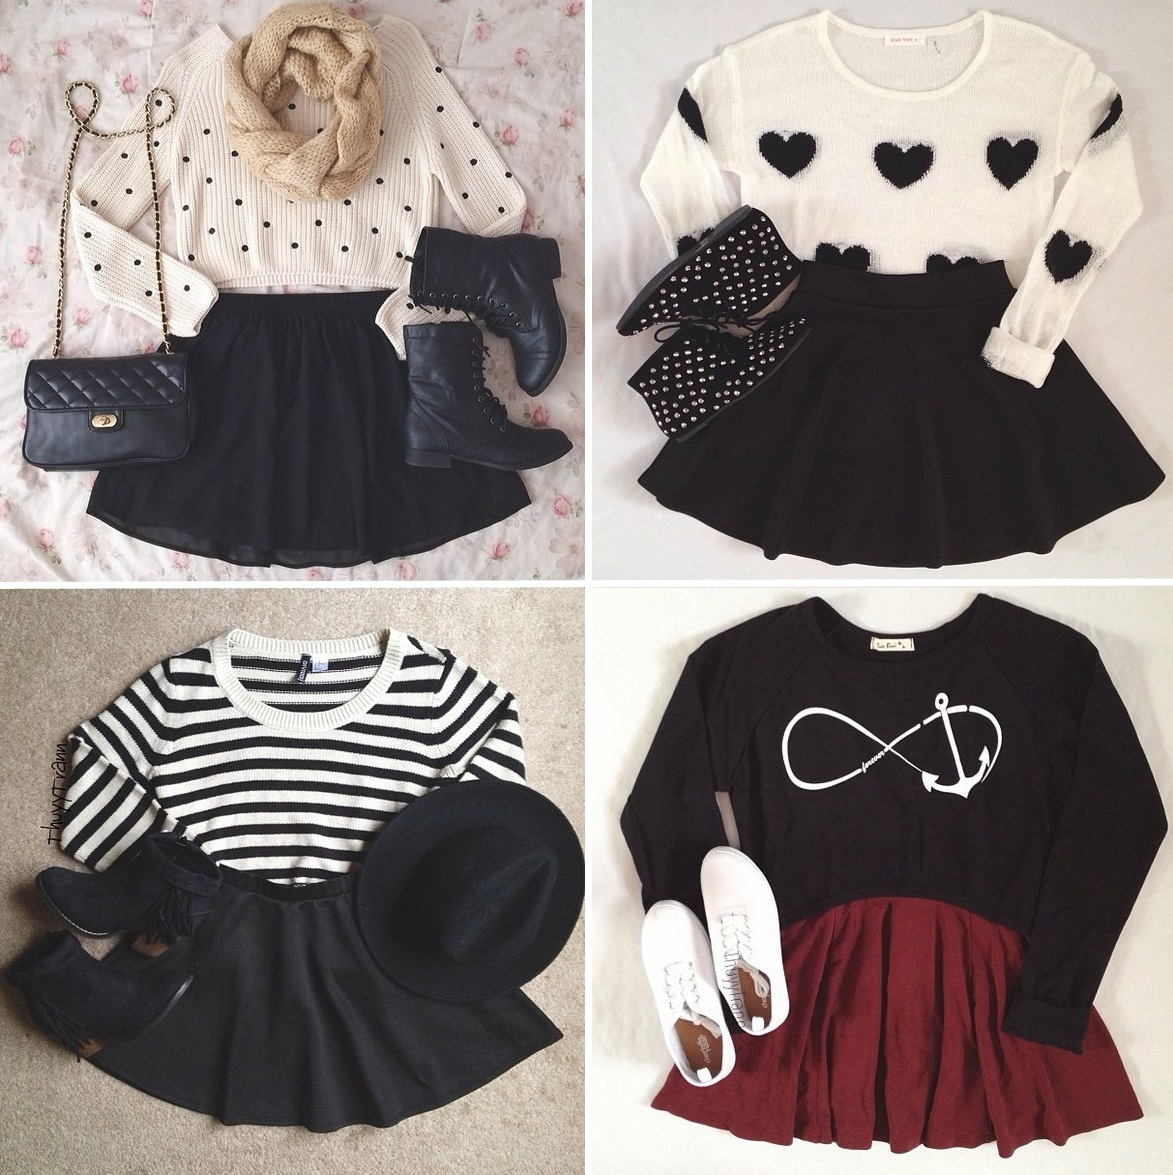 anchor, autumn, black, black and white, burgundy, clothes, clothing, comfy, fall, fashion, fashionable, forever, heart, ideas, inspirations, mini skirt, outfits, polka dots, pullover, skirt, stripy, style, stylish, sweater, white